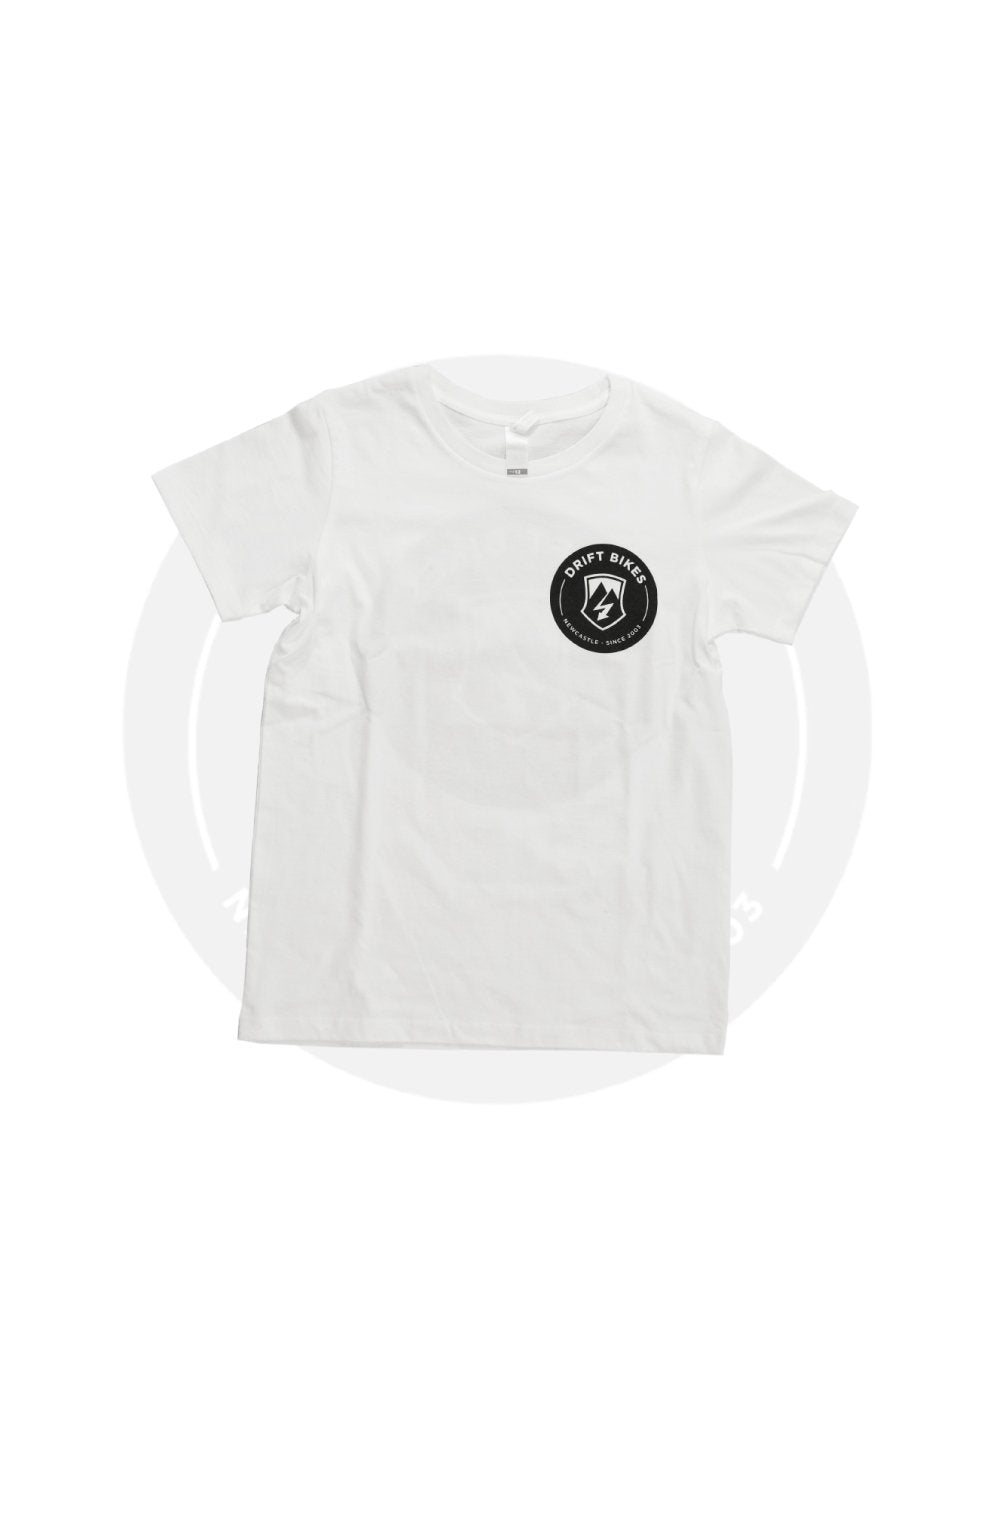 Drift Bikes Full Circle T-shirt white KIDS